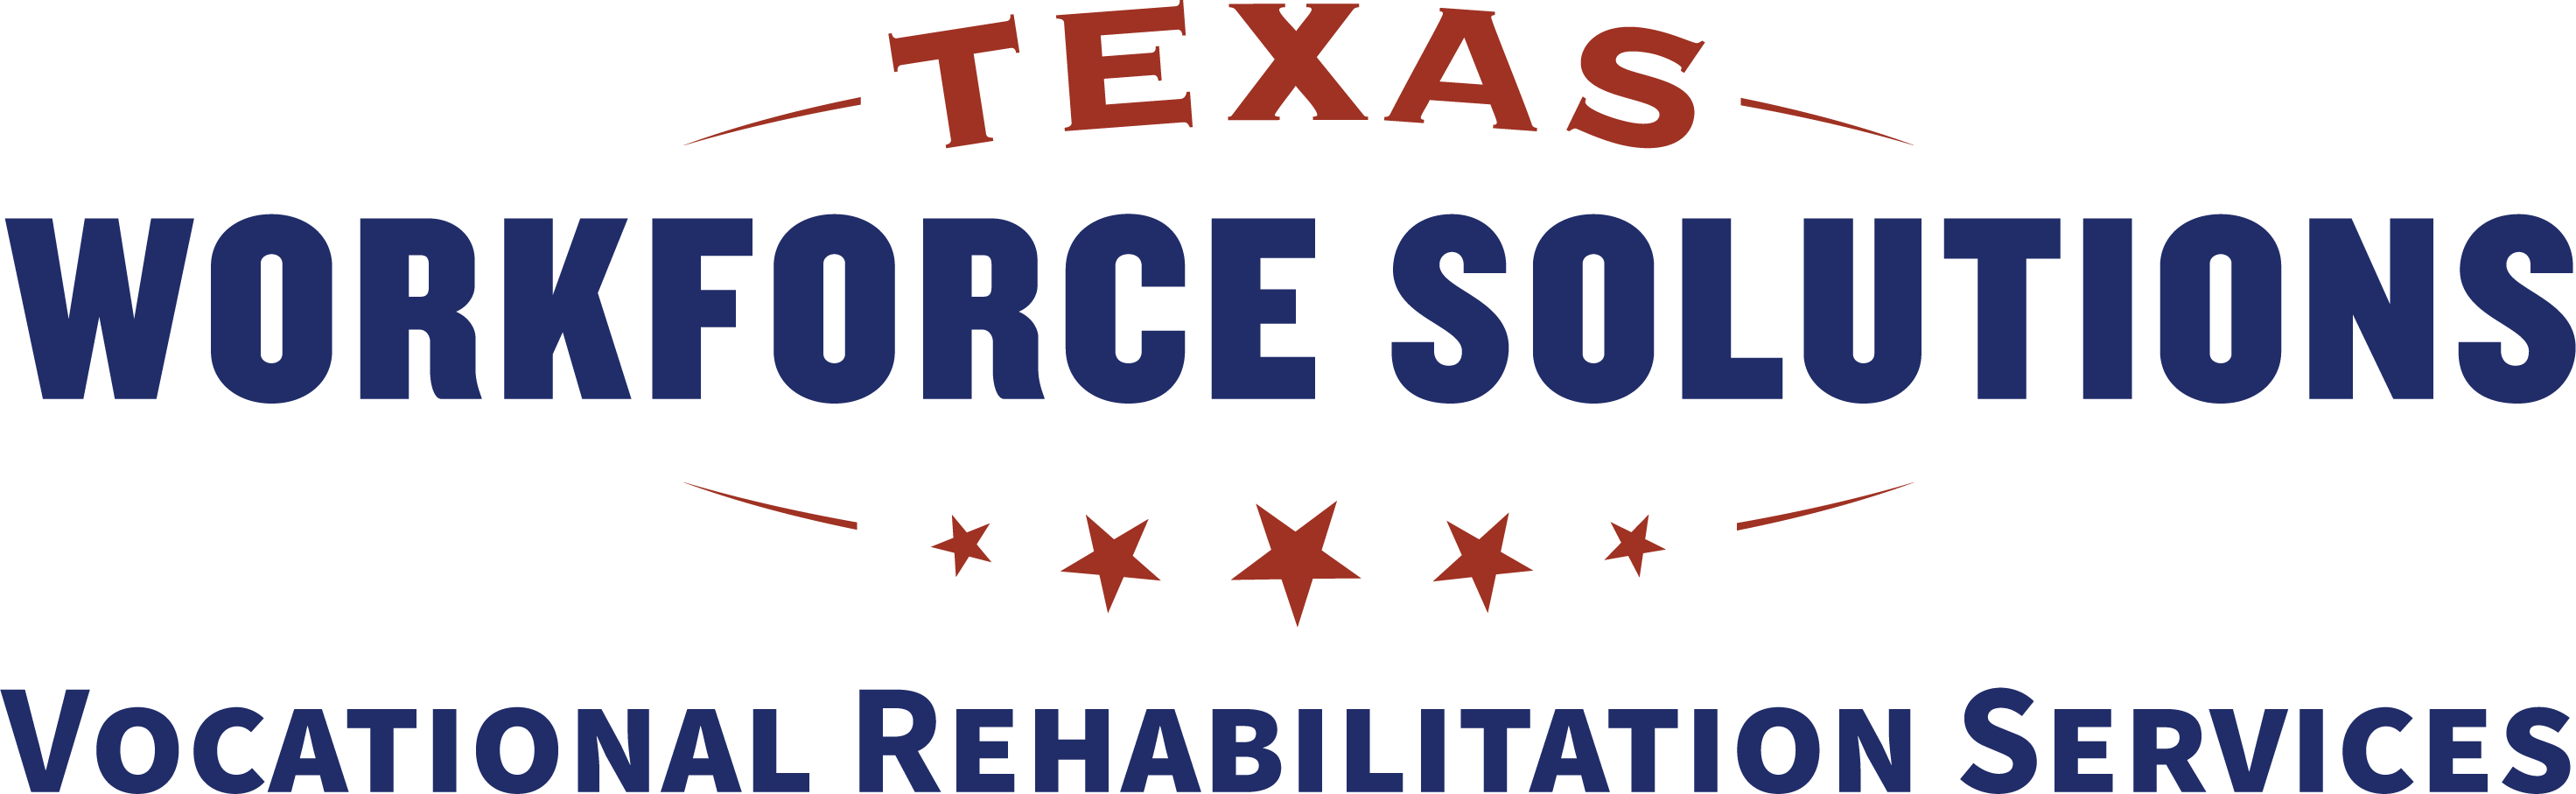 Texas Workforce Solutions Logo